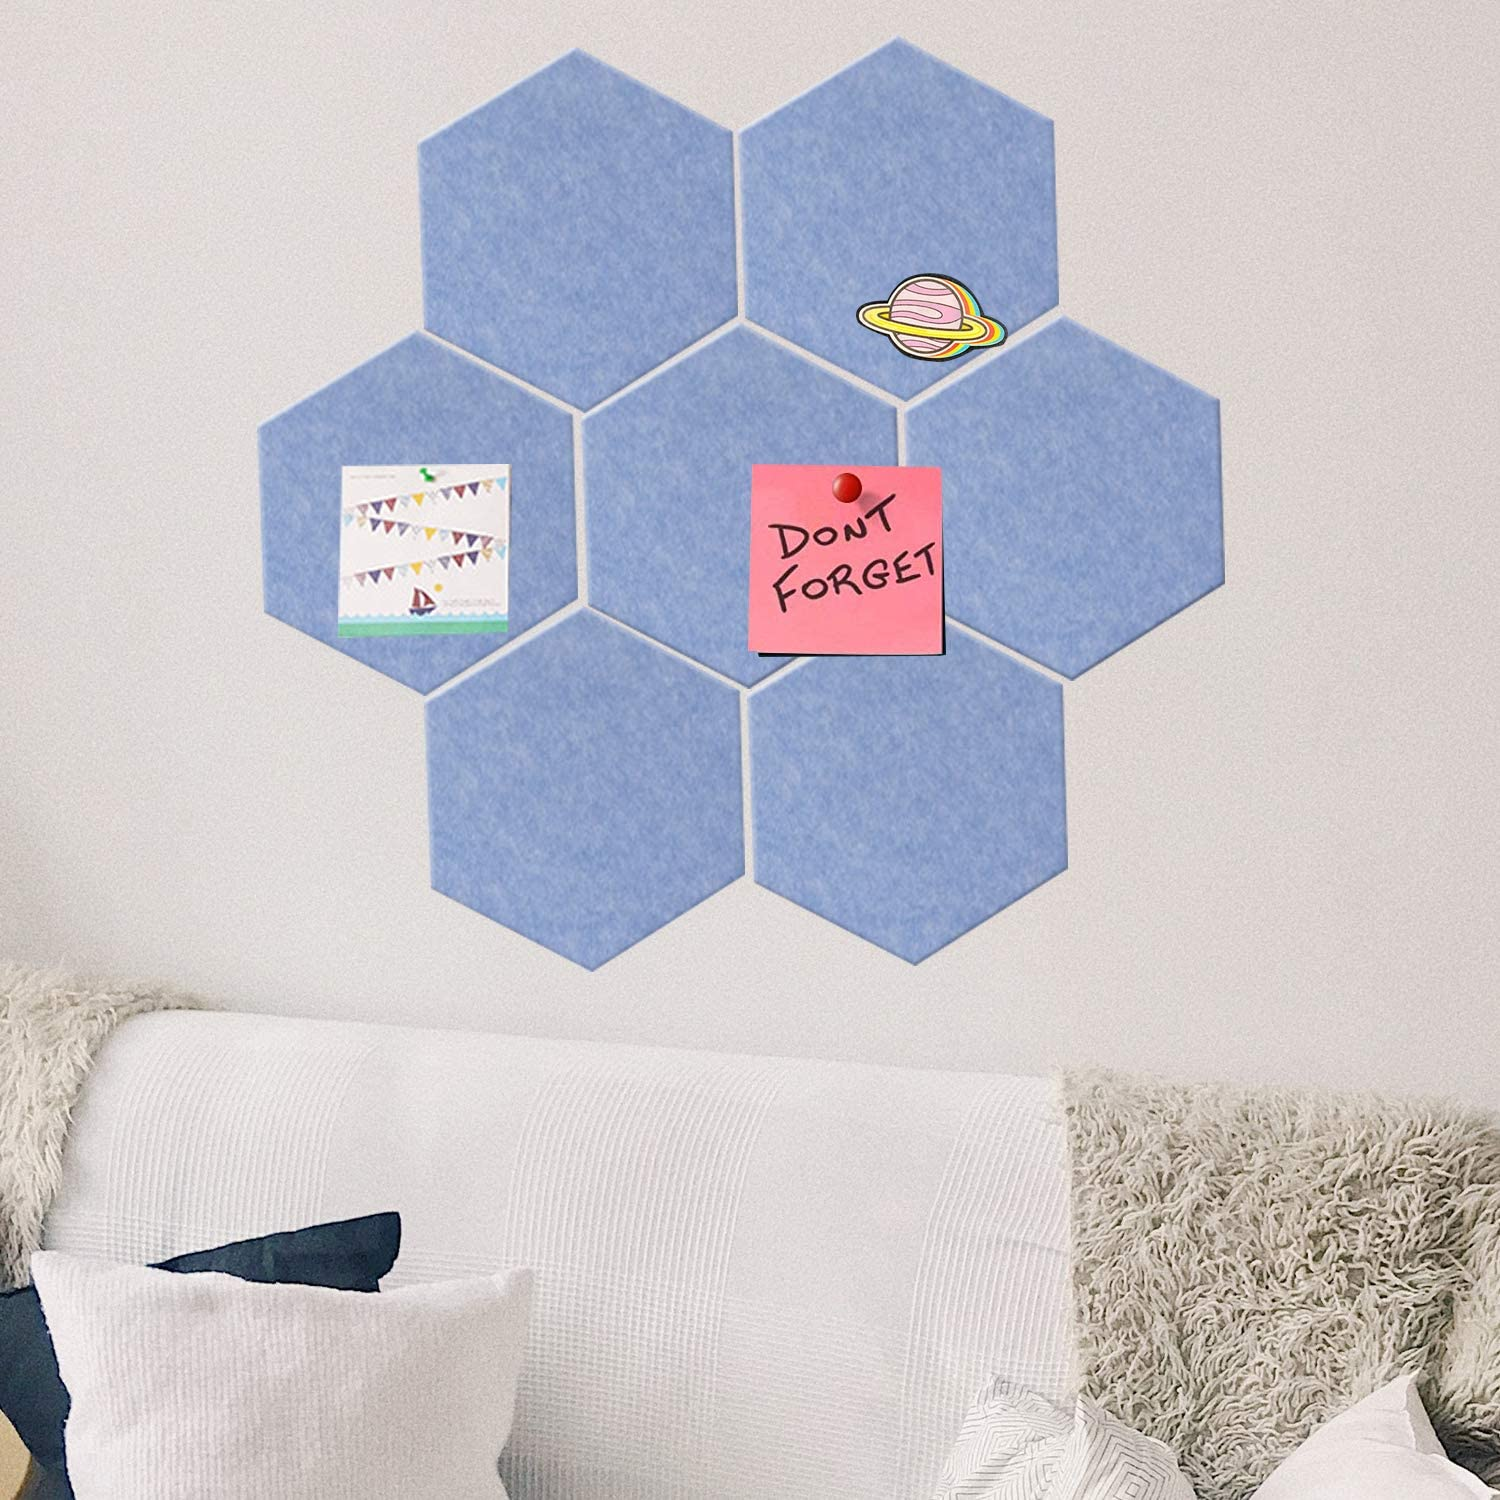 Fanciher 7 Pack Hexagon Felt Board, Cork Board, Memo Board, Adhesive Wall Bulletin Board, Message Board, for Office Bedroom Home Wall Decor with Push Pins with 20 pcs pins (Blue)